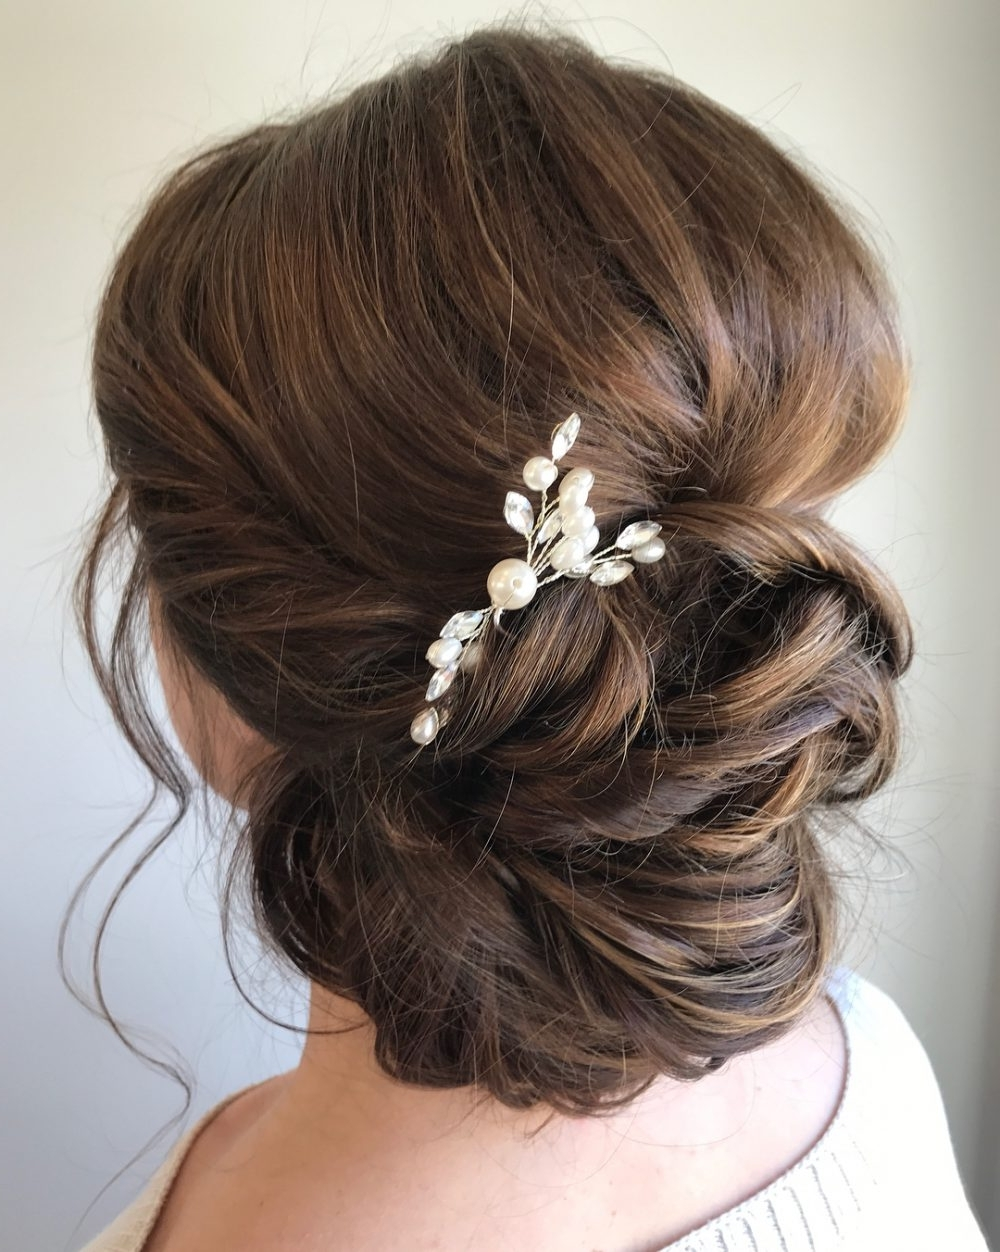 33 Breathtaking Loose Updos That Are Trendy For 2018 With Regard To Soft Updos For Long Hair (View 4 of 15)